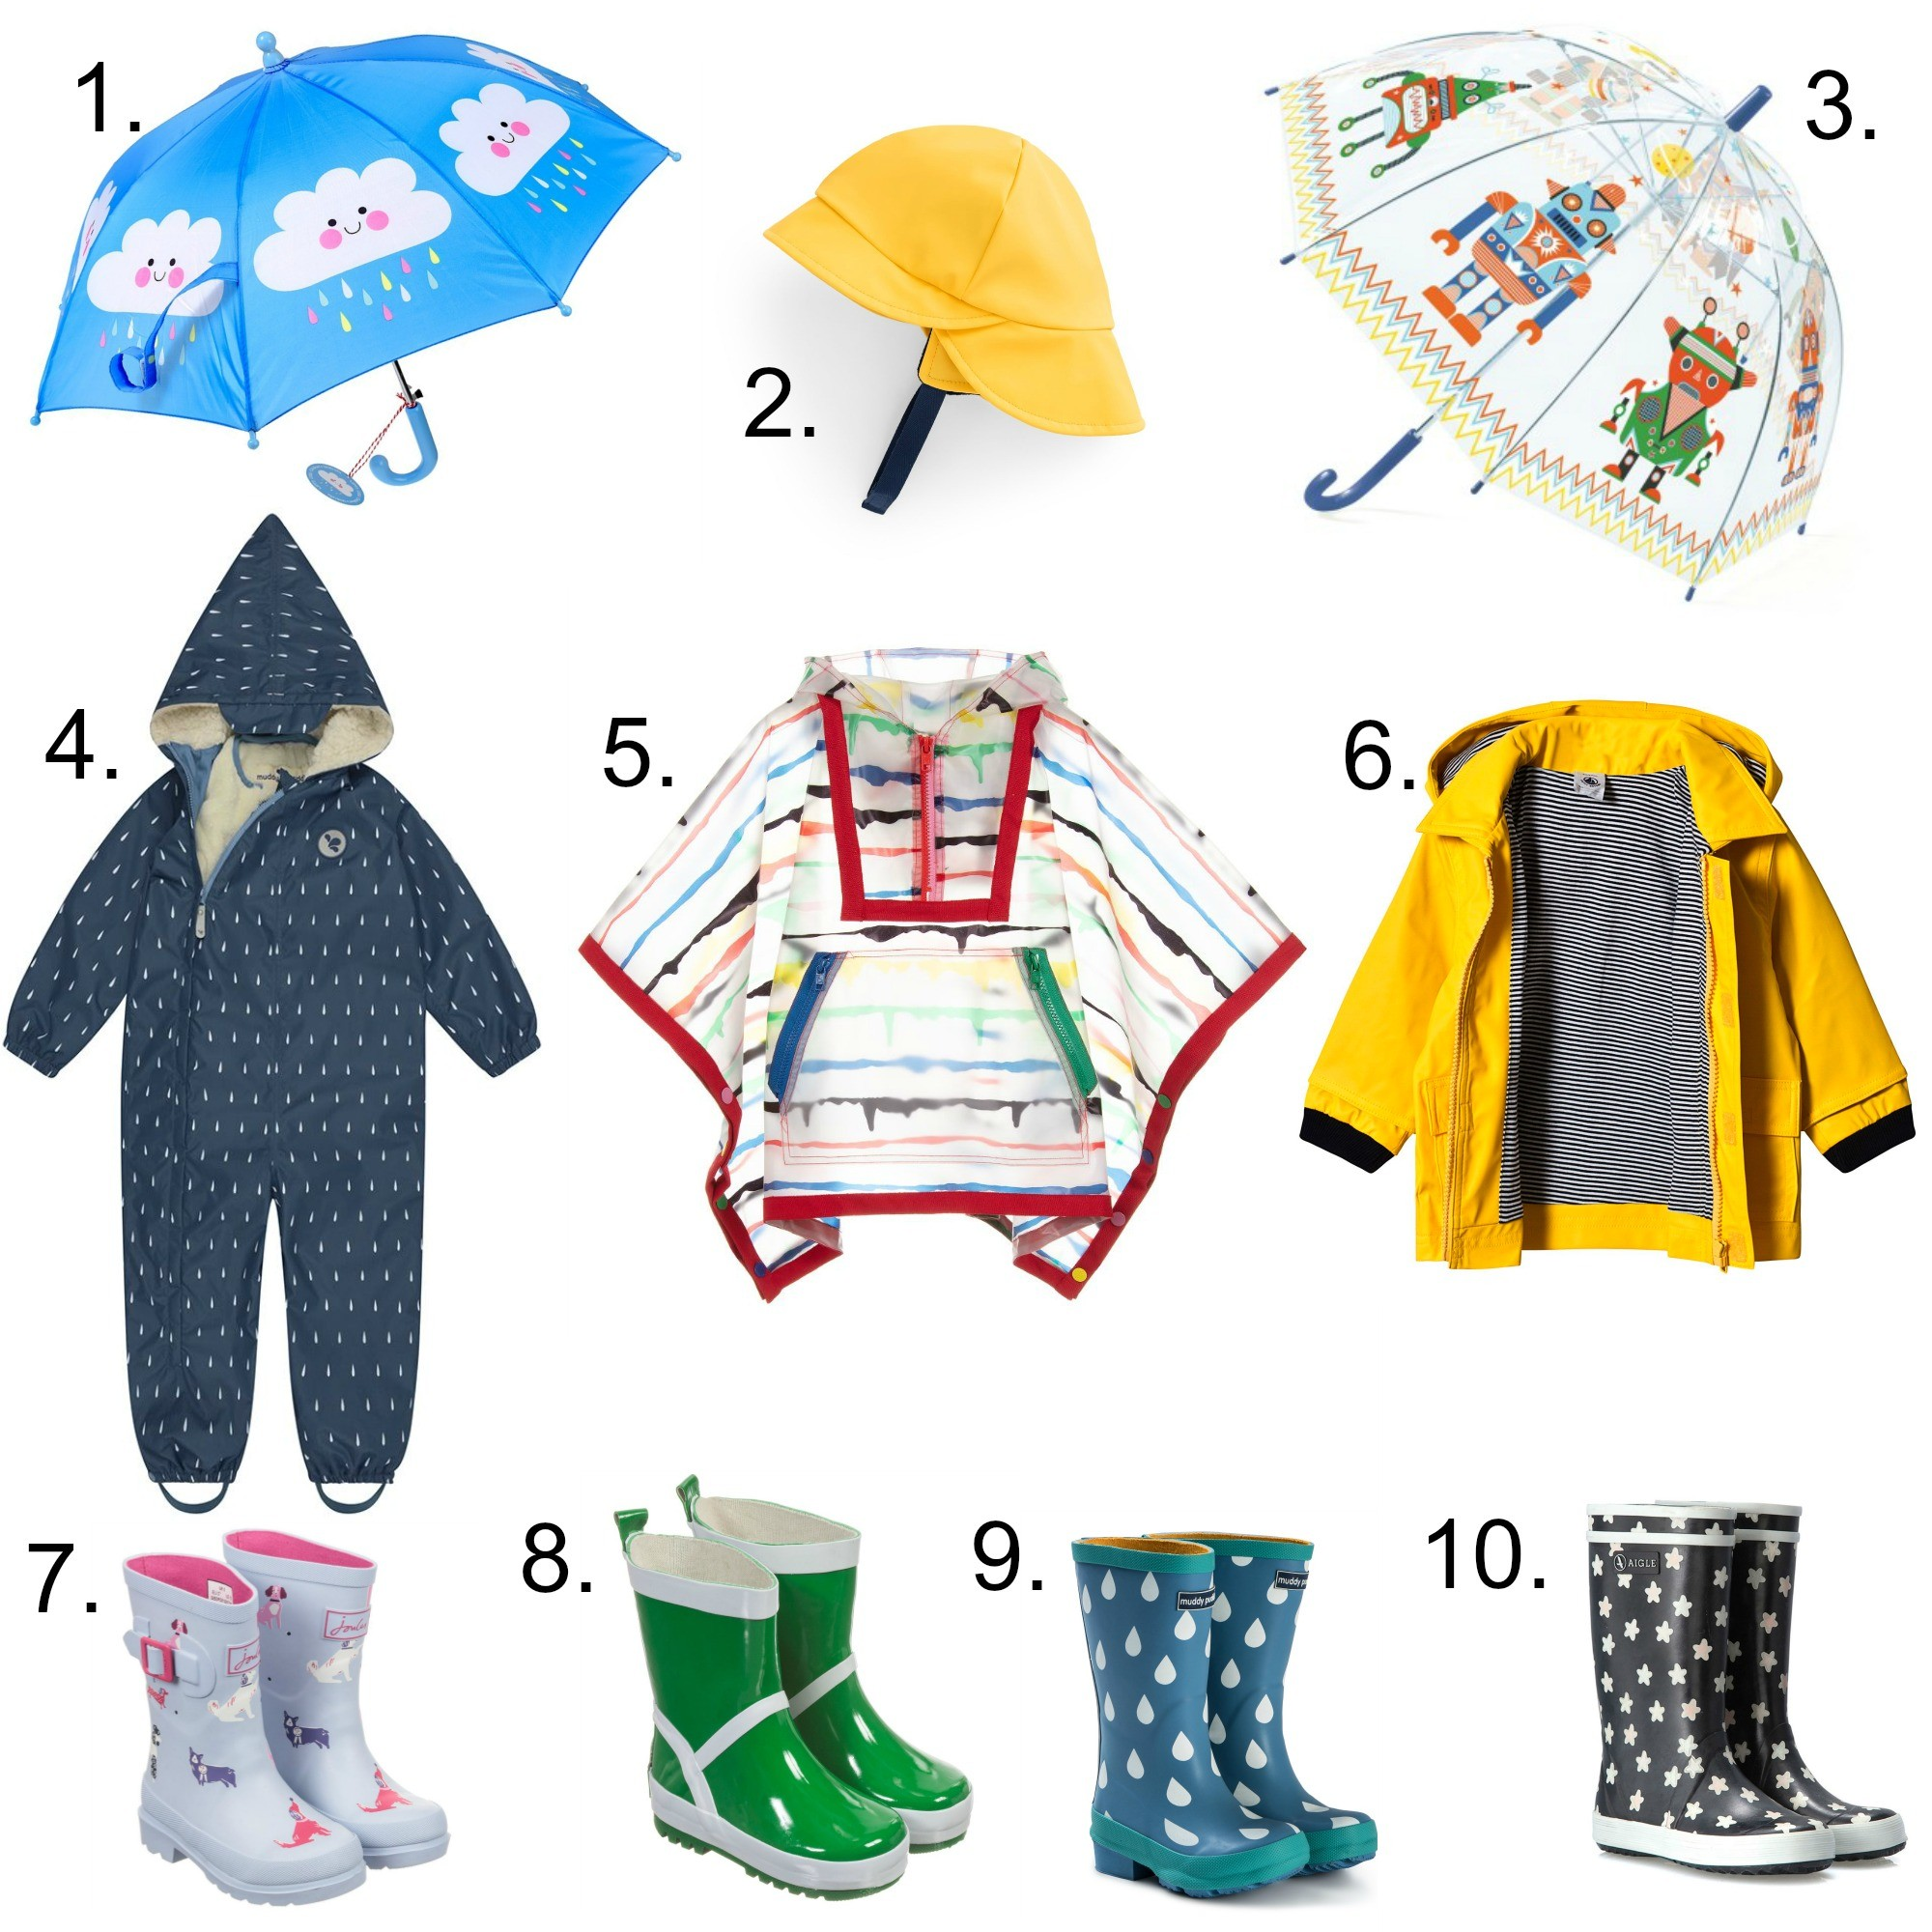 The joys of jumping in puddles - and wet weather essentials for kids